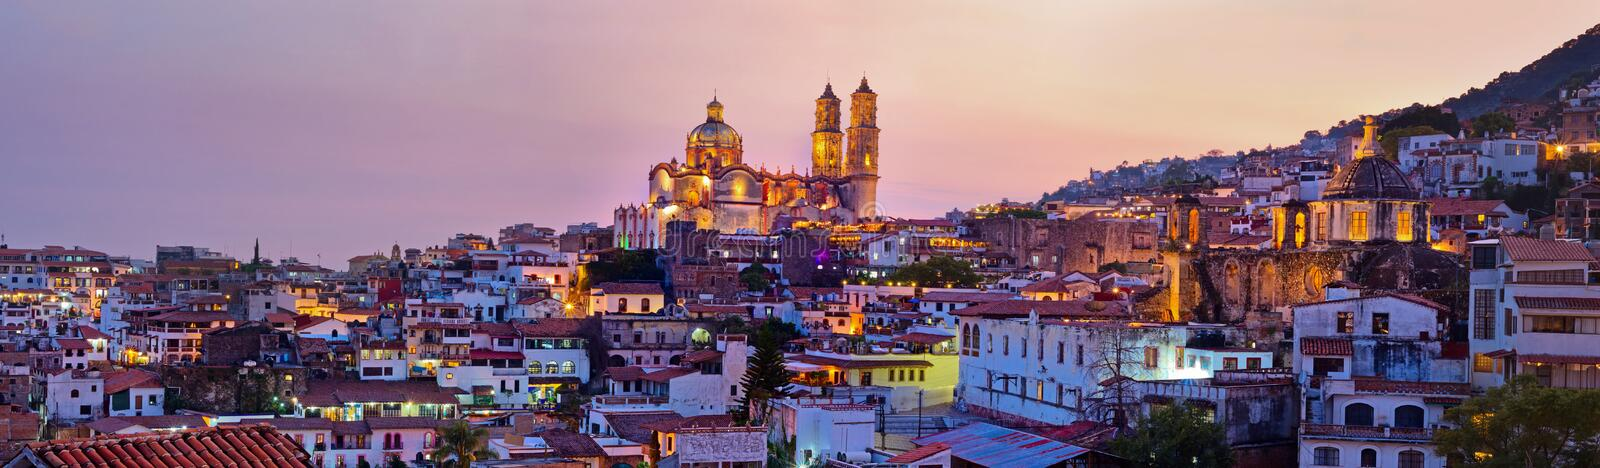 Panorama of Taxco city at sunset, Mexico royalty free stock photos